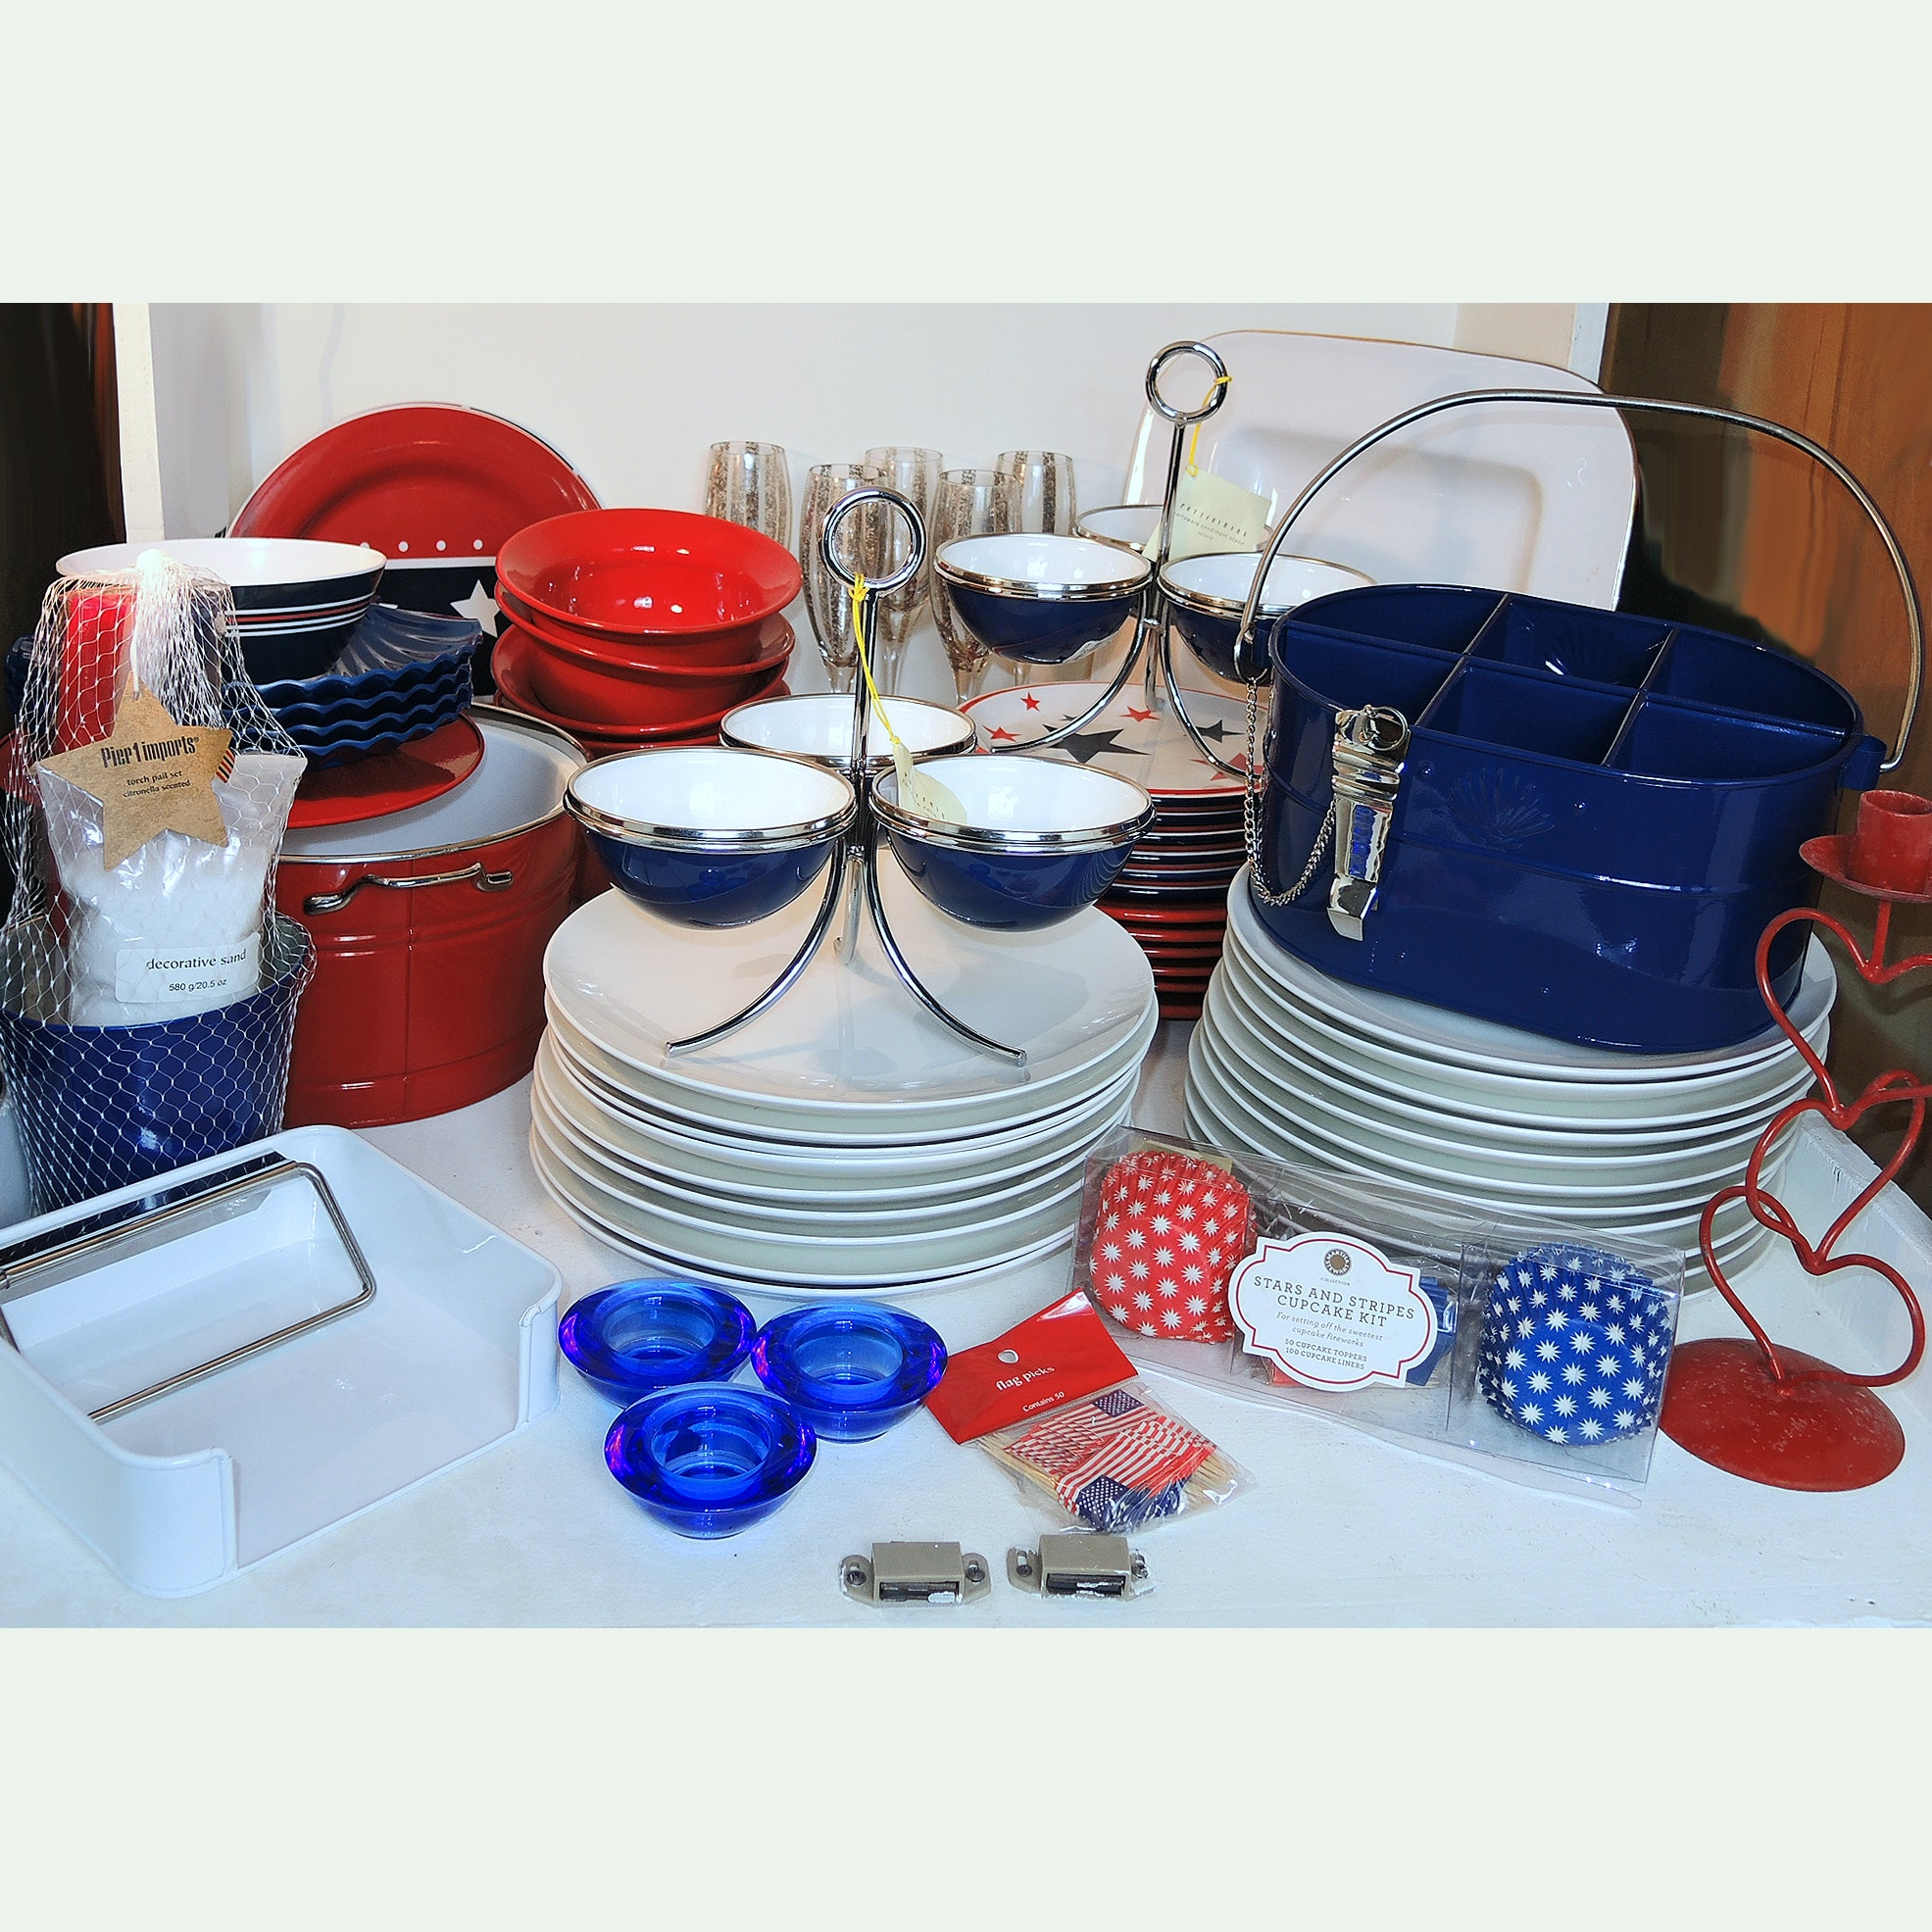 July 4th Entertaining Featuring Pottery Barn and Pier 1 Tableware ... & July 4th Entertaining Featuring Pottery Barn and Pier 1 Tableware : EBTH